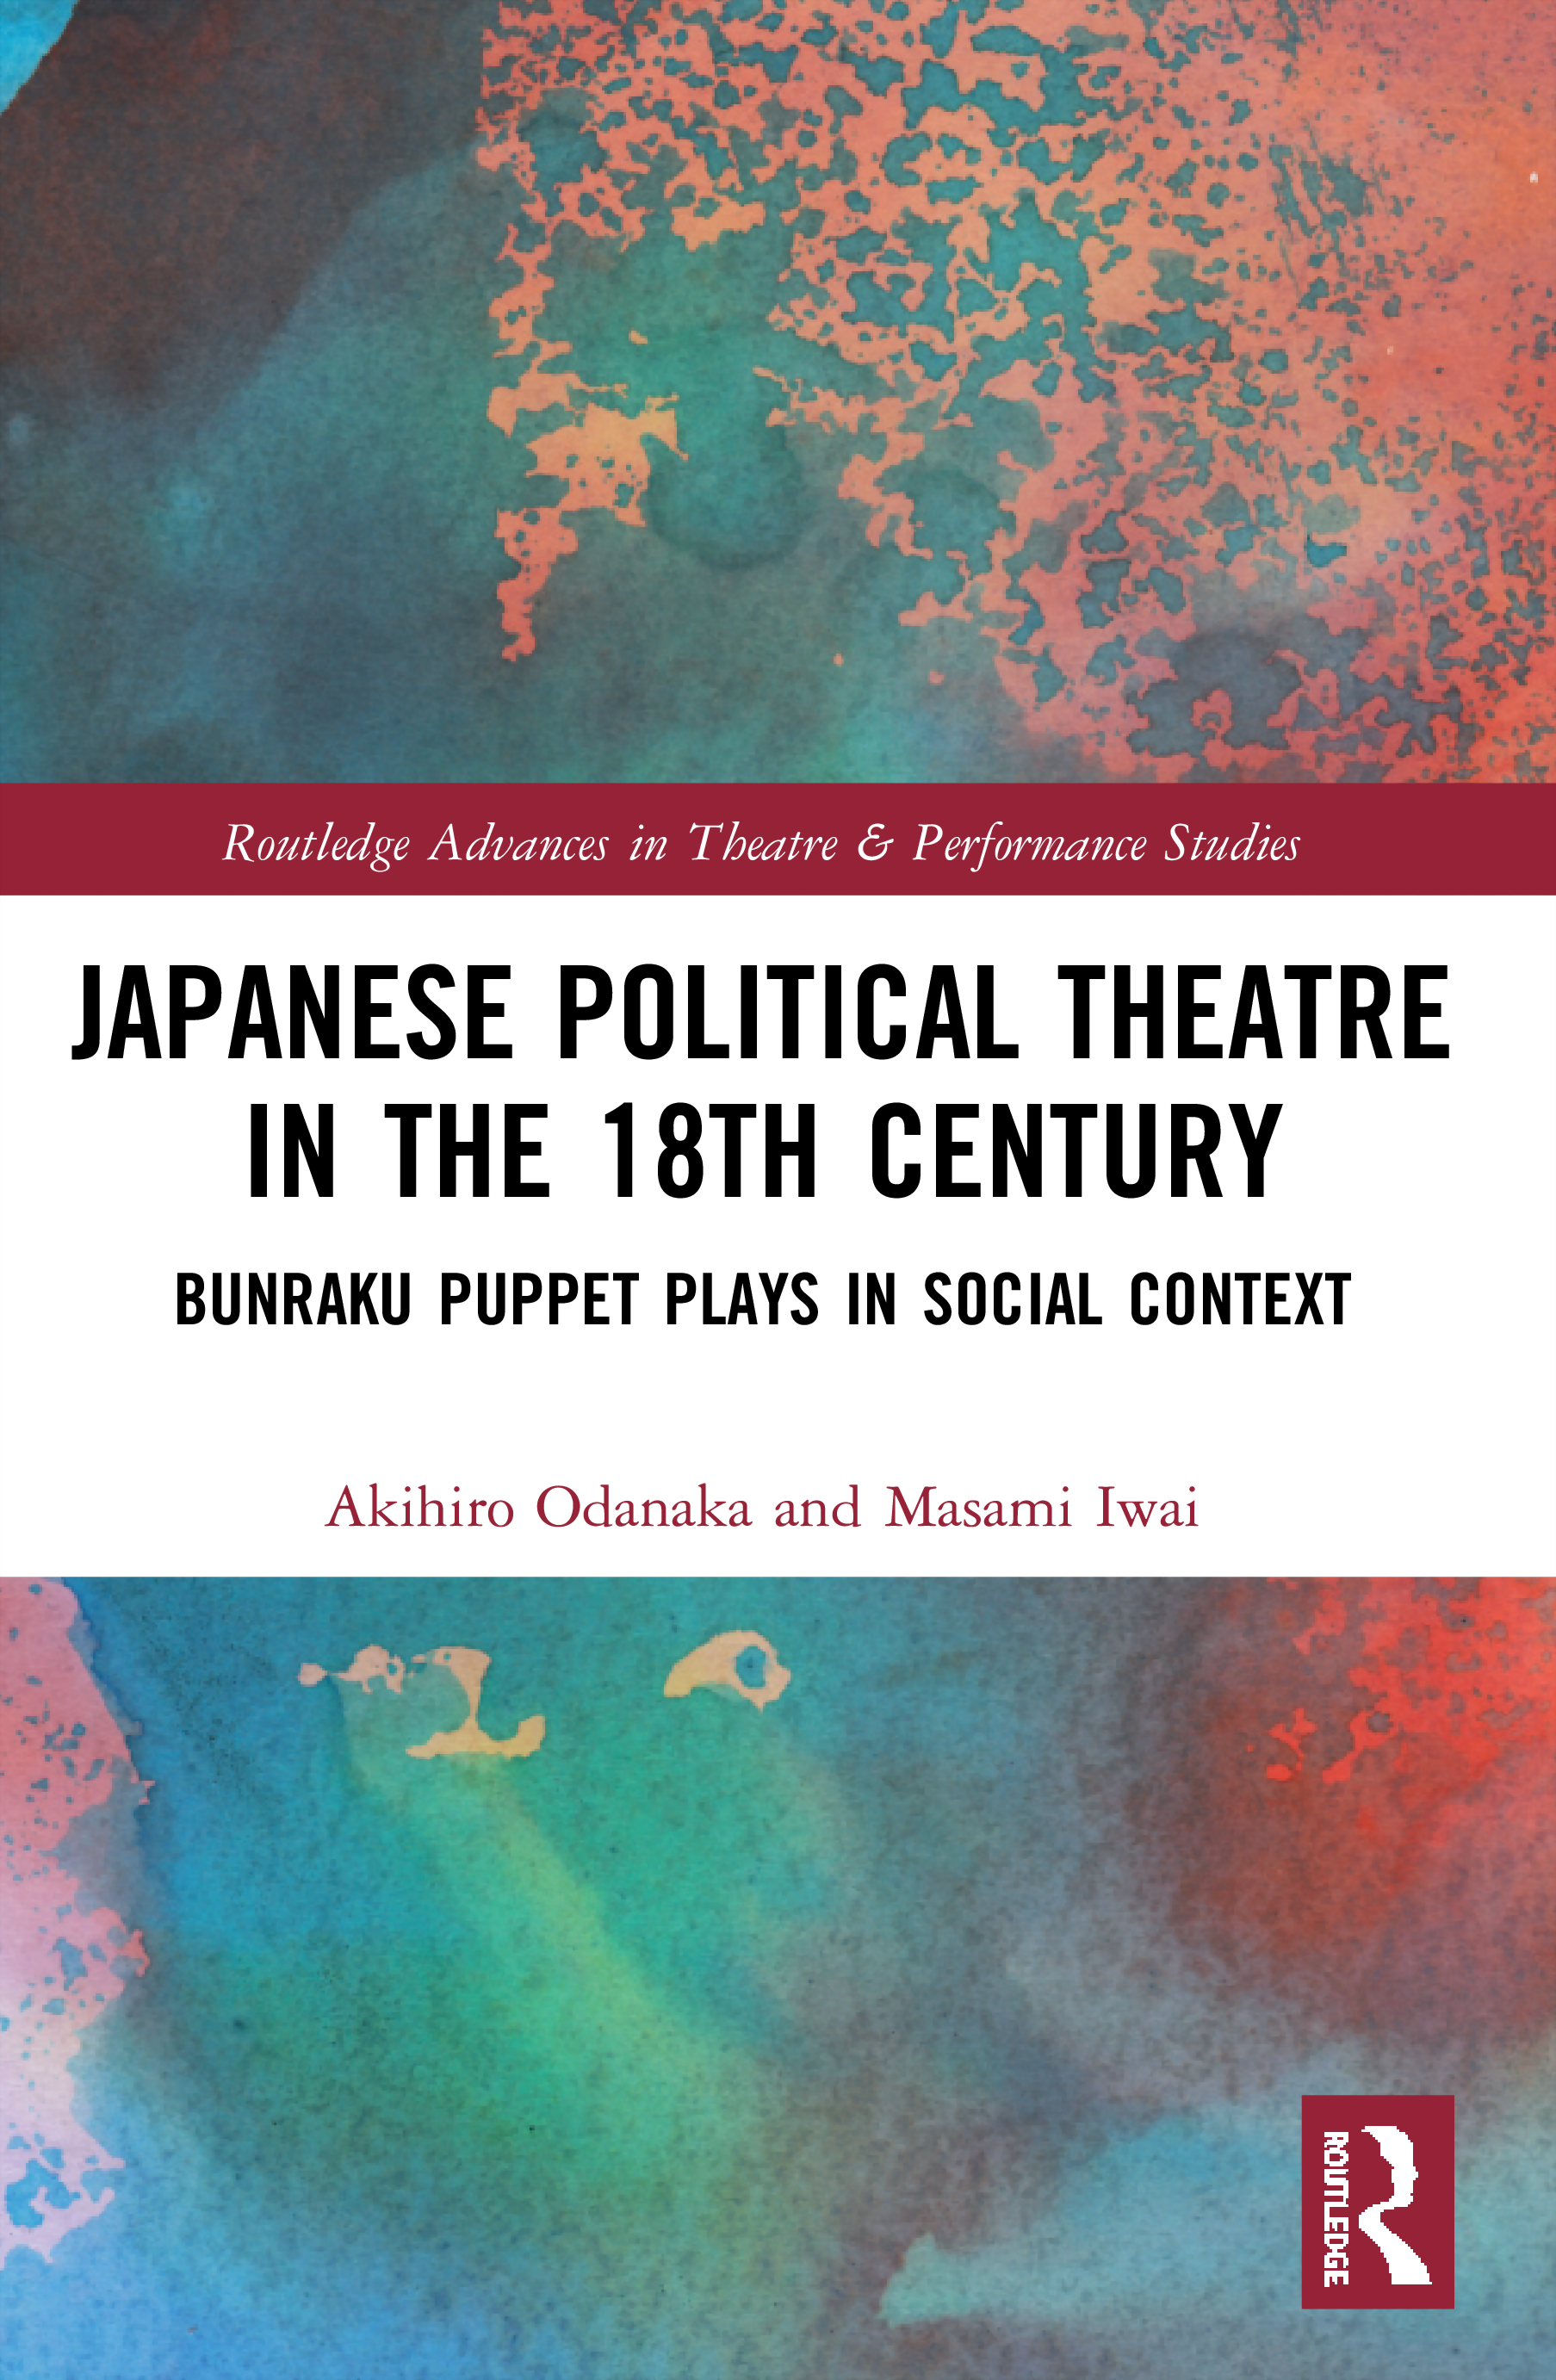 Japanese Political Theatre in the 18th Century